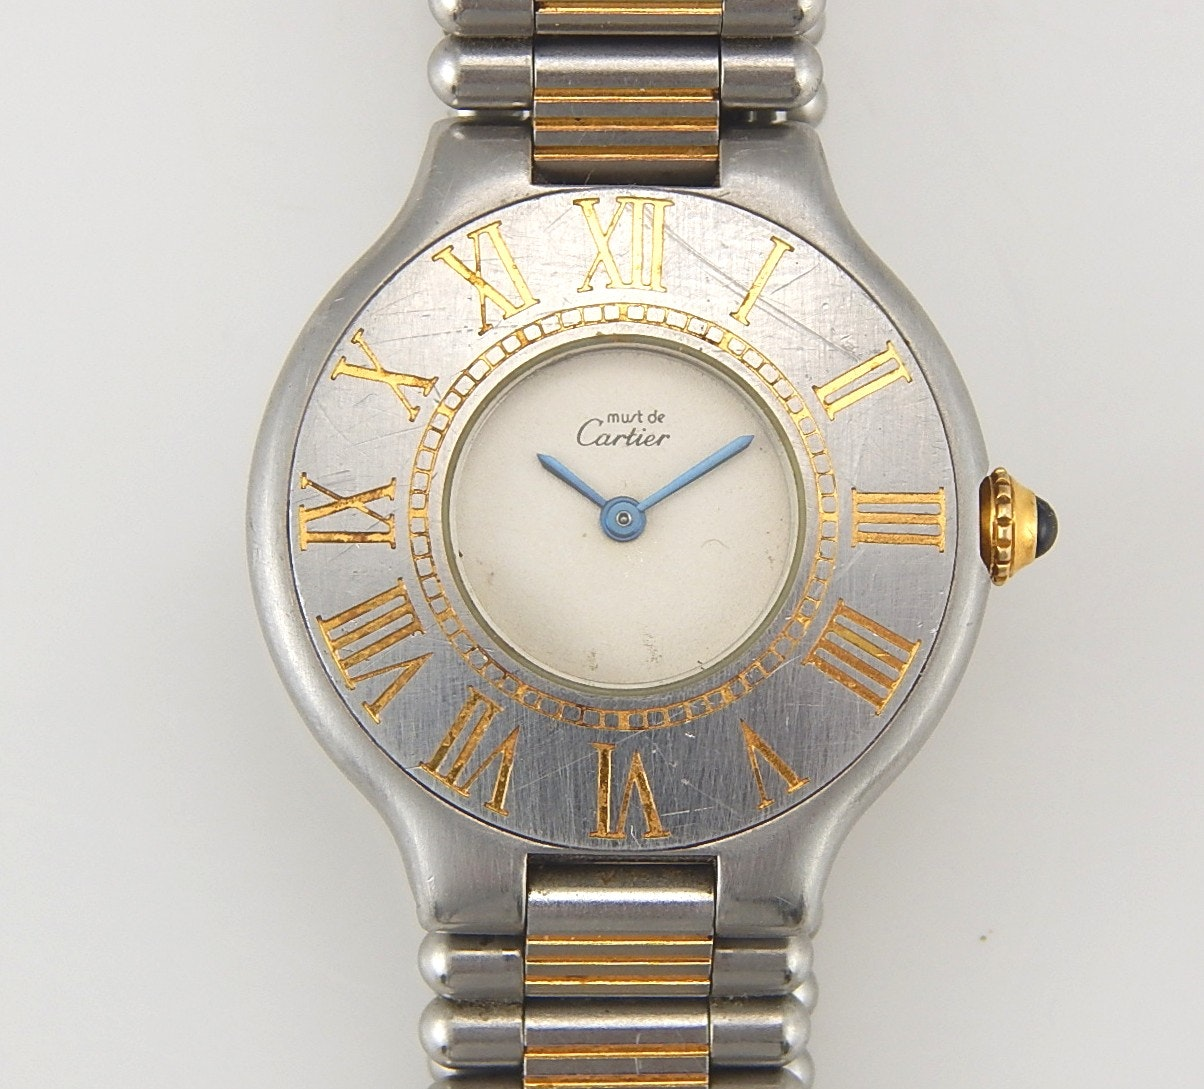 Must de Cartier Two-Tone Stainless Steel Wristwatch